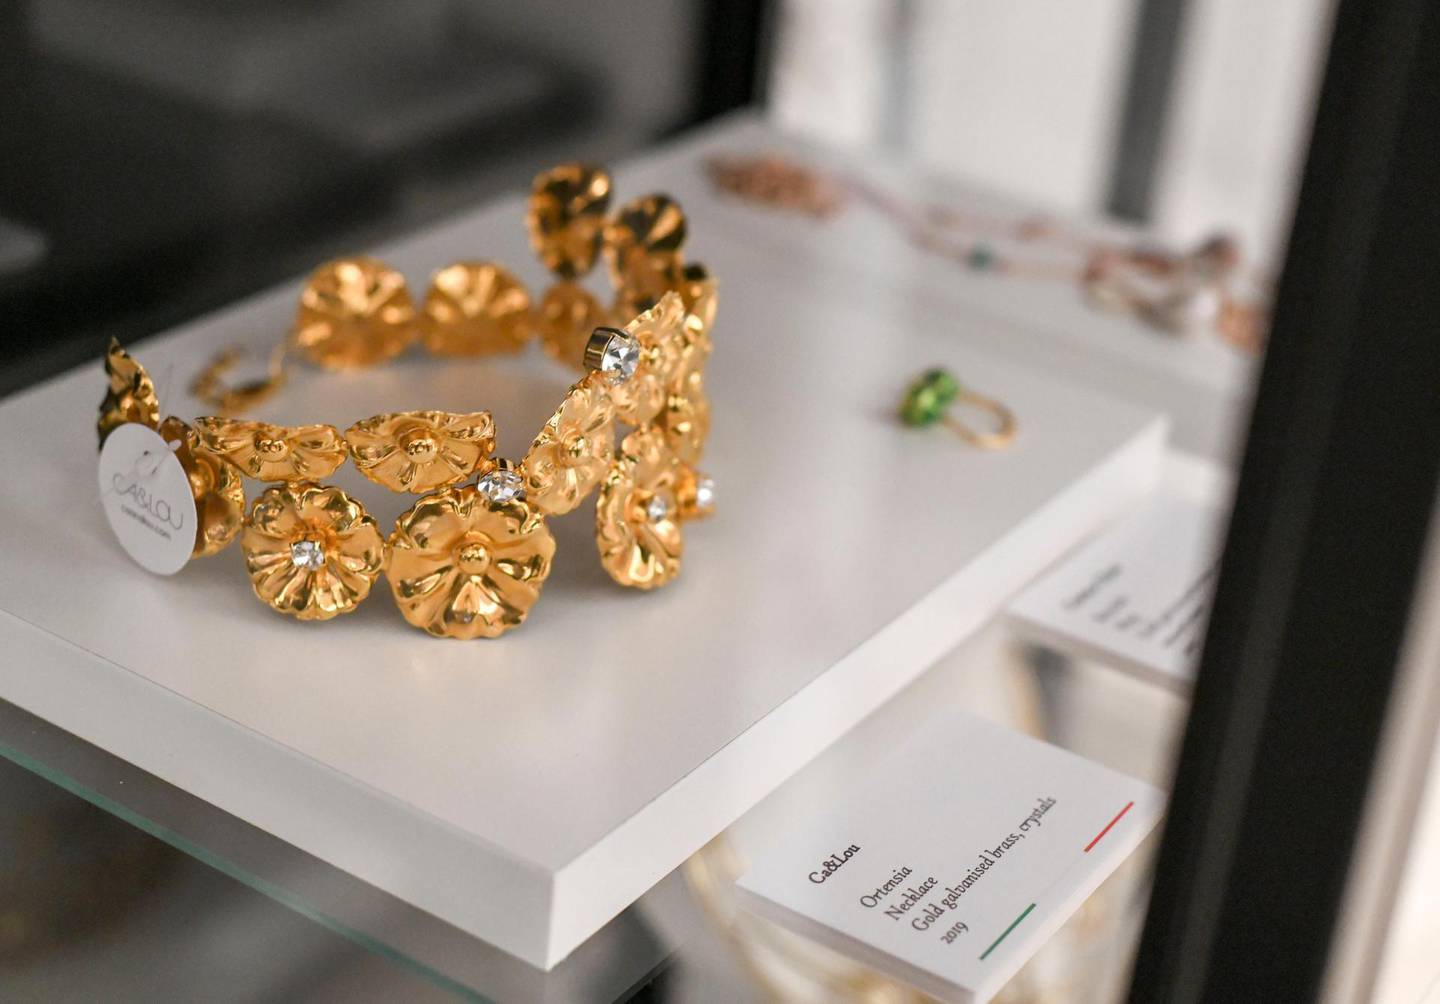 Ribbon Cutting Ceremony of DIVA-AD  ÔOrtensiaÕ necklace made of gold galvanized brass, crystals by Ca&Lou at the Italian Cultural Institute Abu Dhabi on June 22, 2021. Khushnum Bhandari/ The National